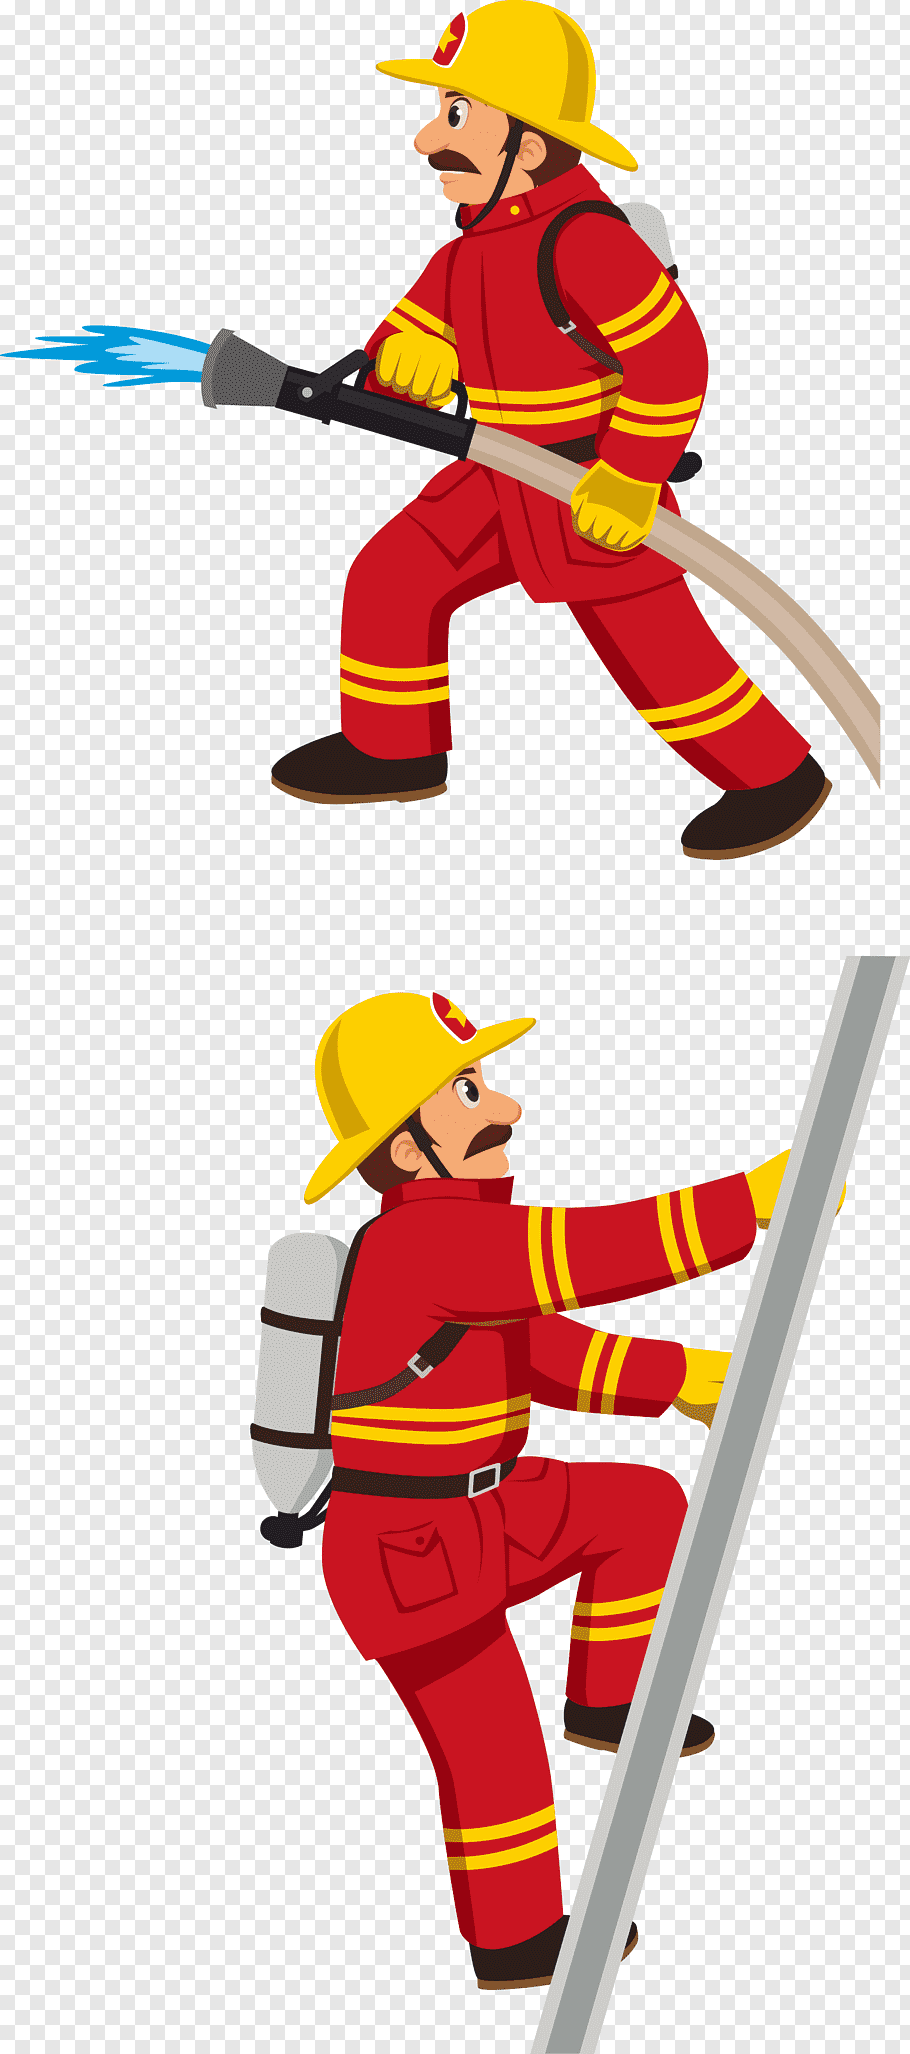 Firefighter holding house and climbing on ladder.